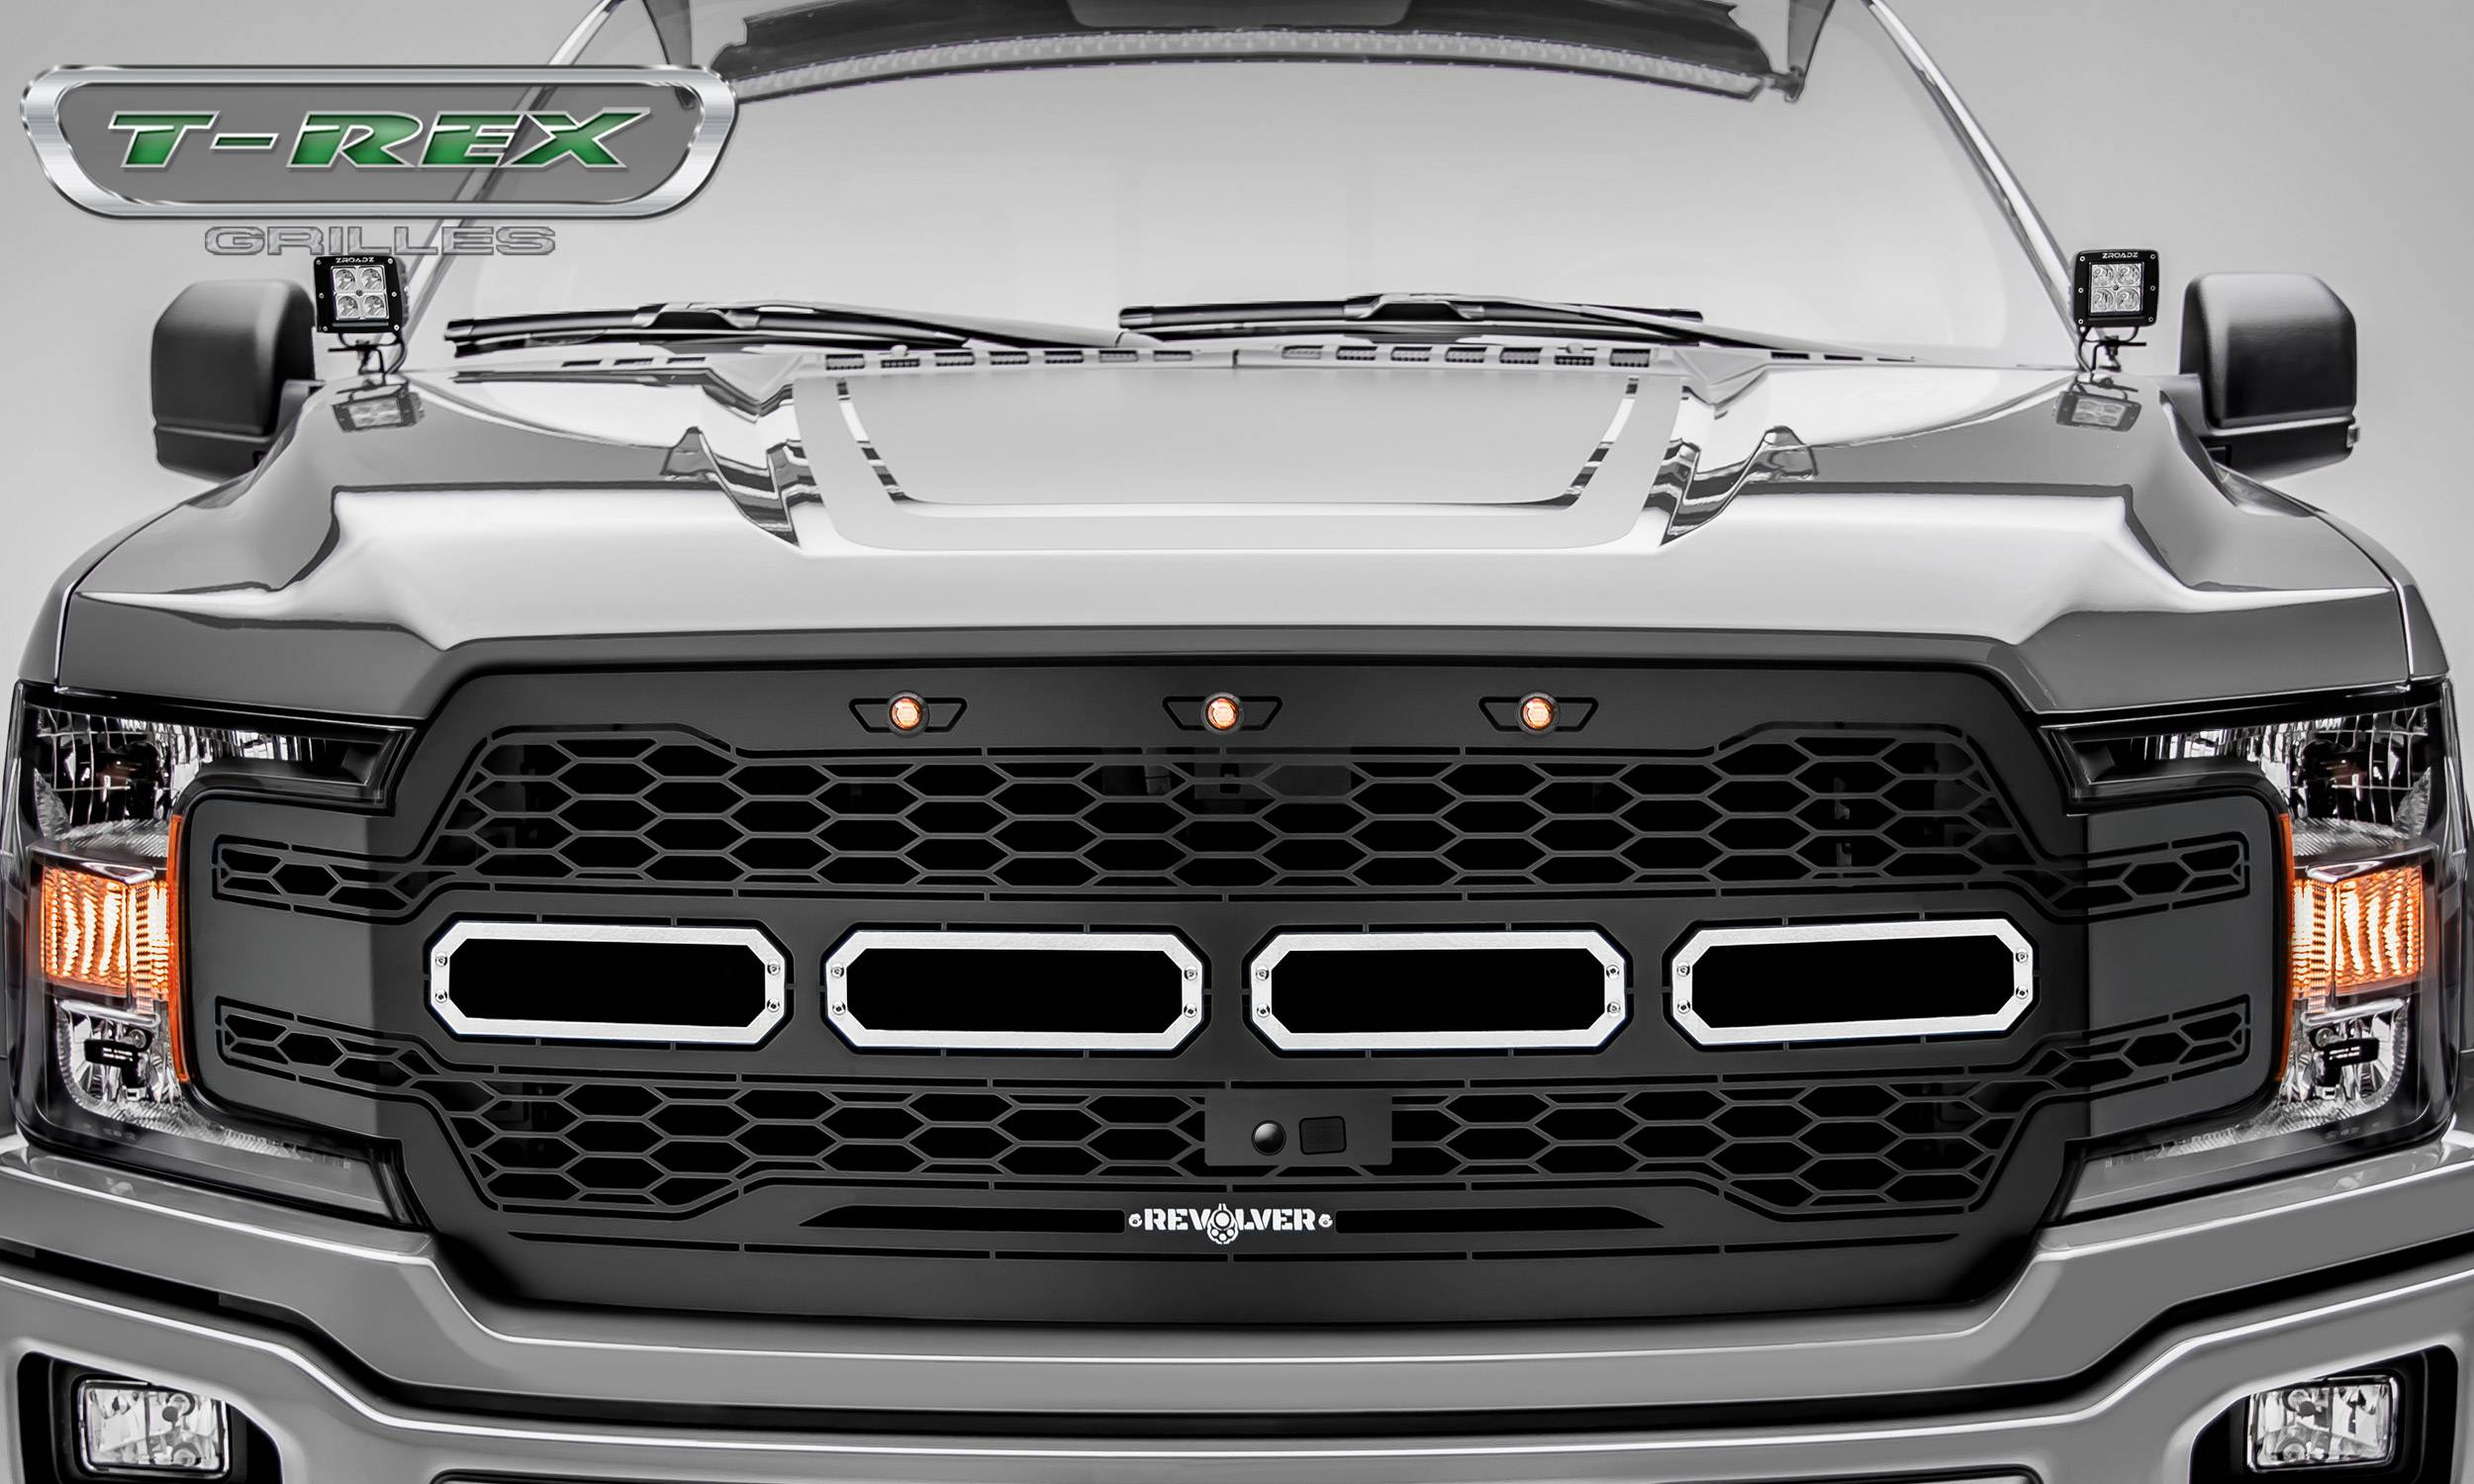 2018 2020 F 150 Revolver Grille Black 1 Pc Replacement Chrome Studs Fits Vehicles With Camera Pn 6515781